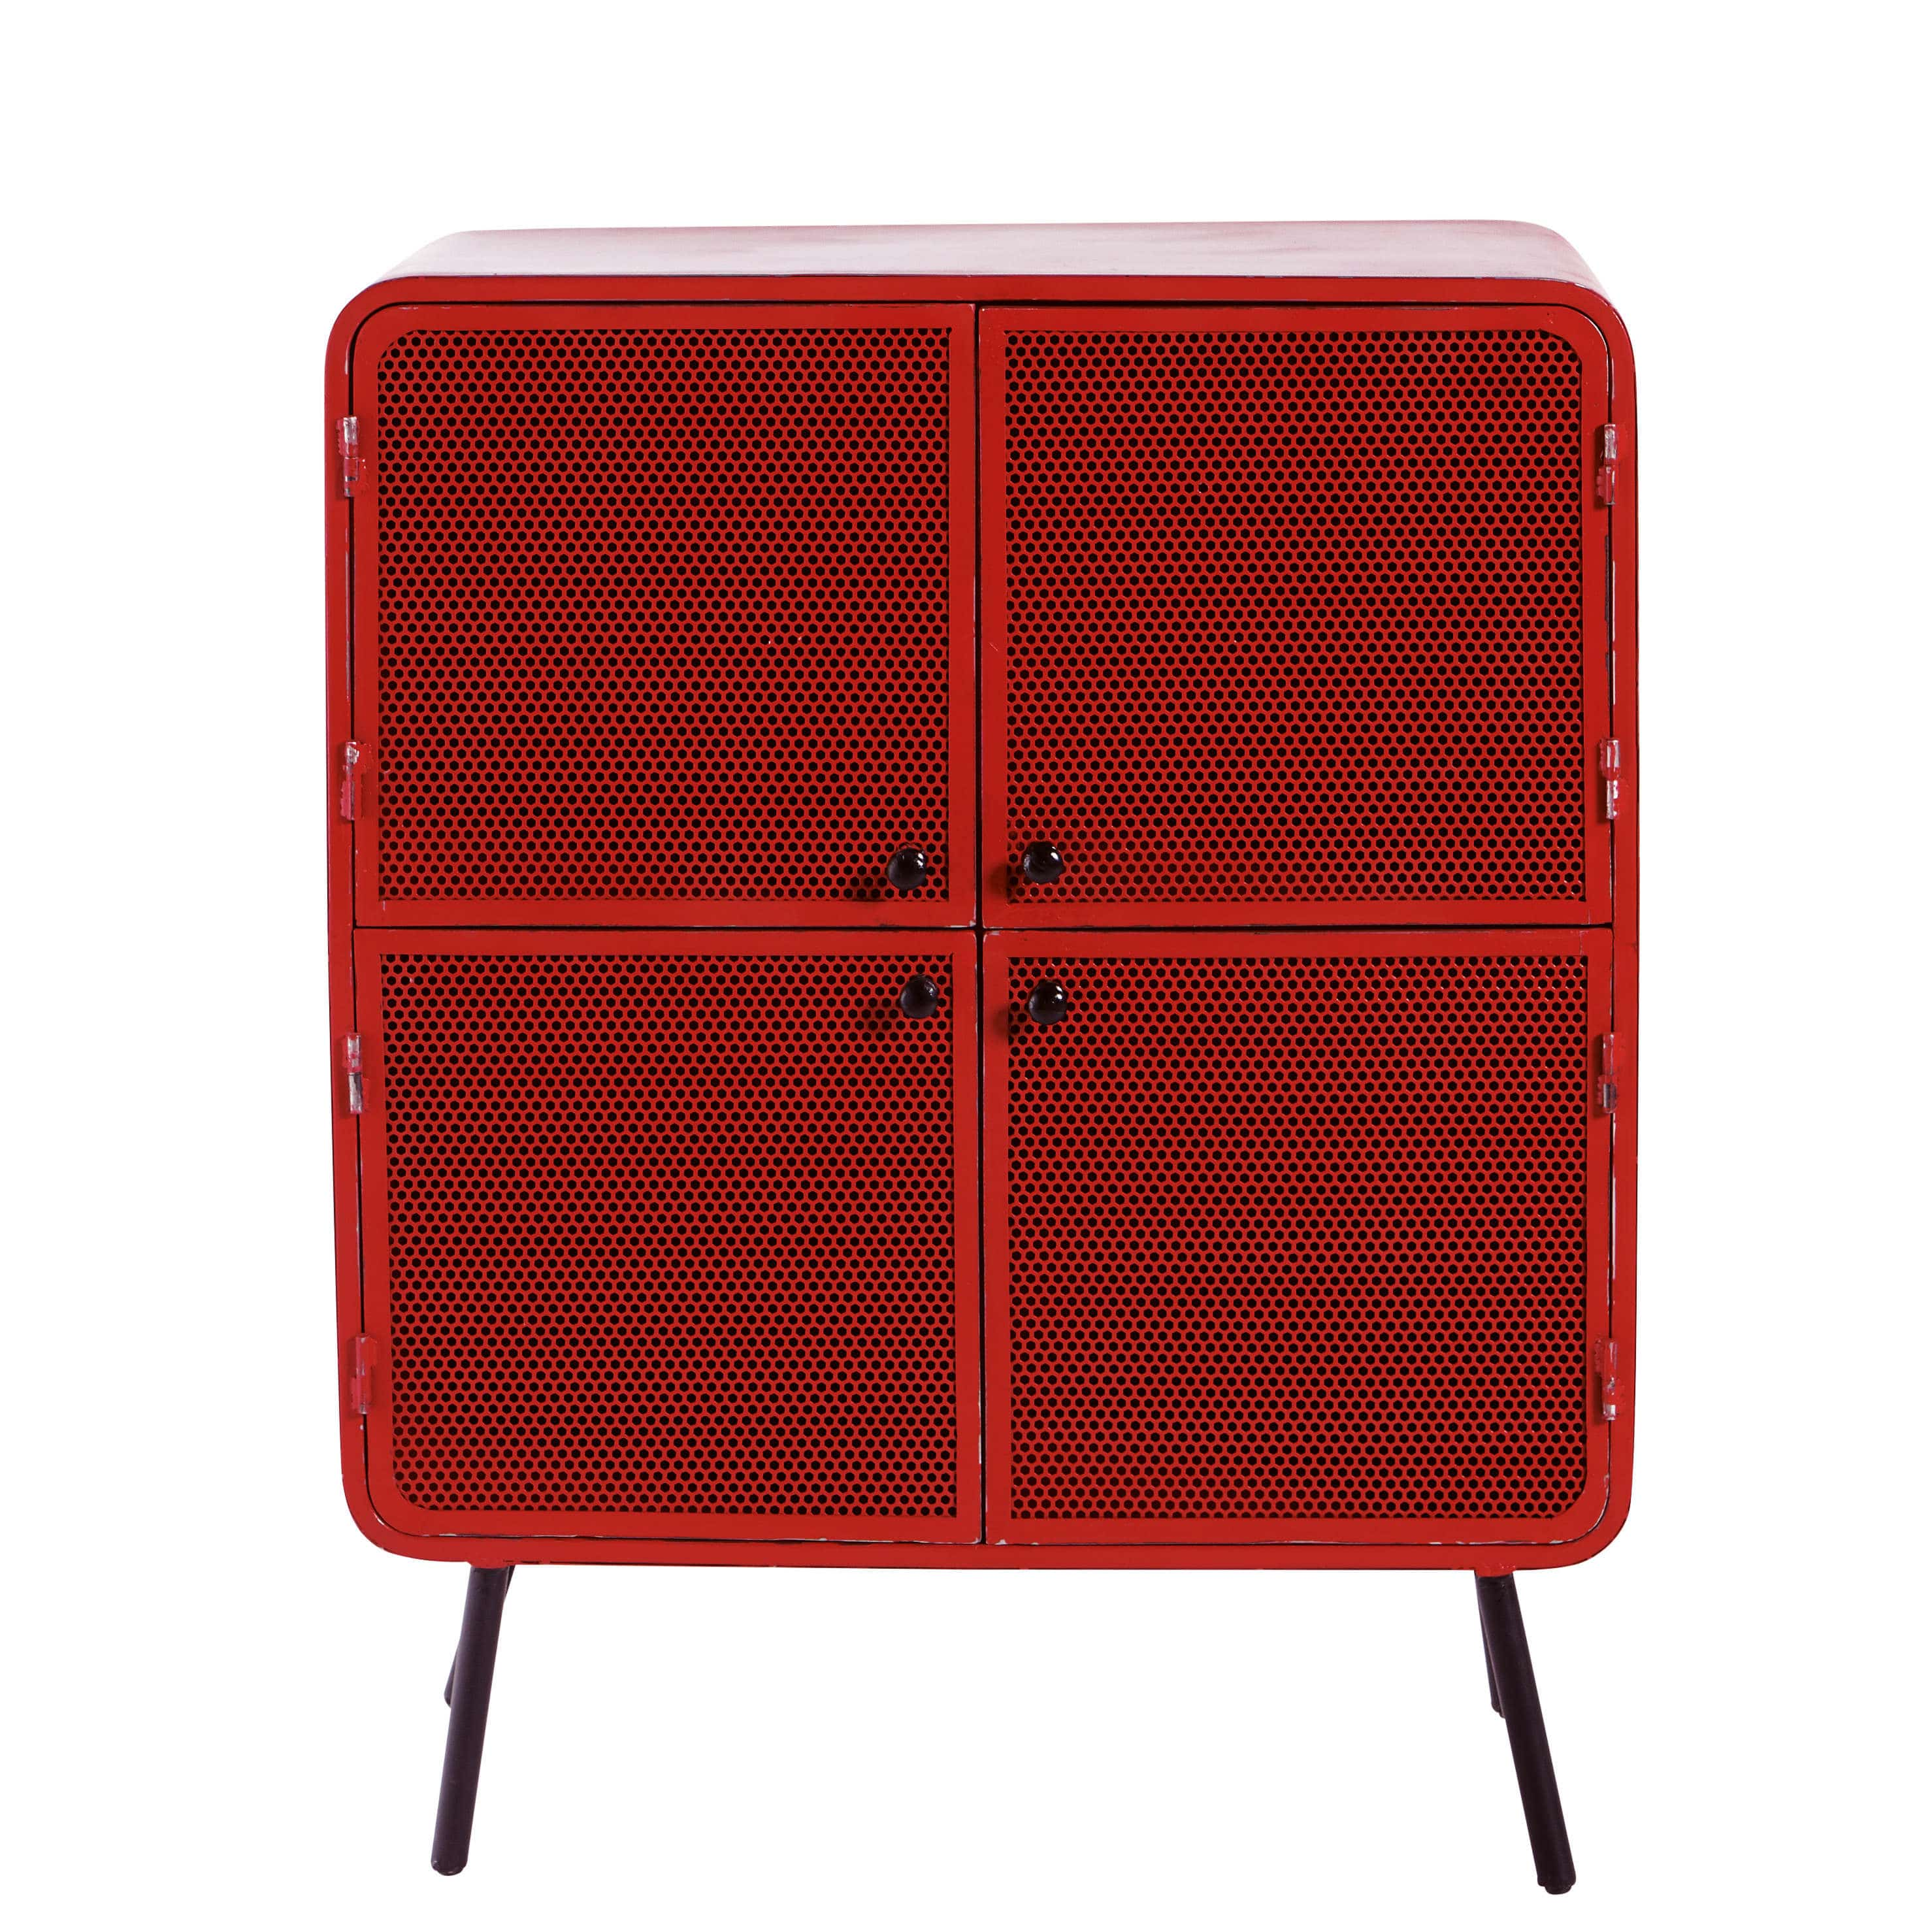 cabinet de rangement en m tal rouge l 80 cm knokke maisons du monde. Black Bedroom Furniture Sets. Home Design Ideas